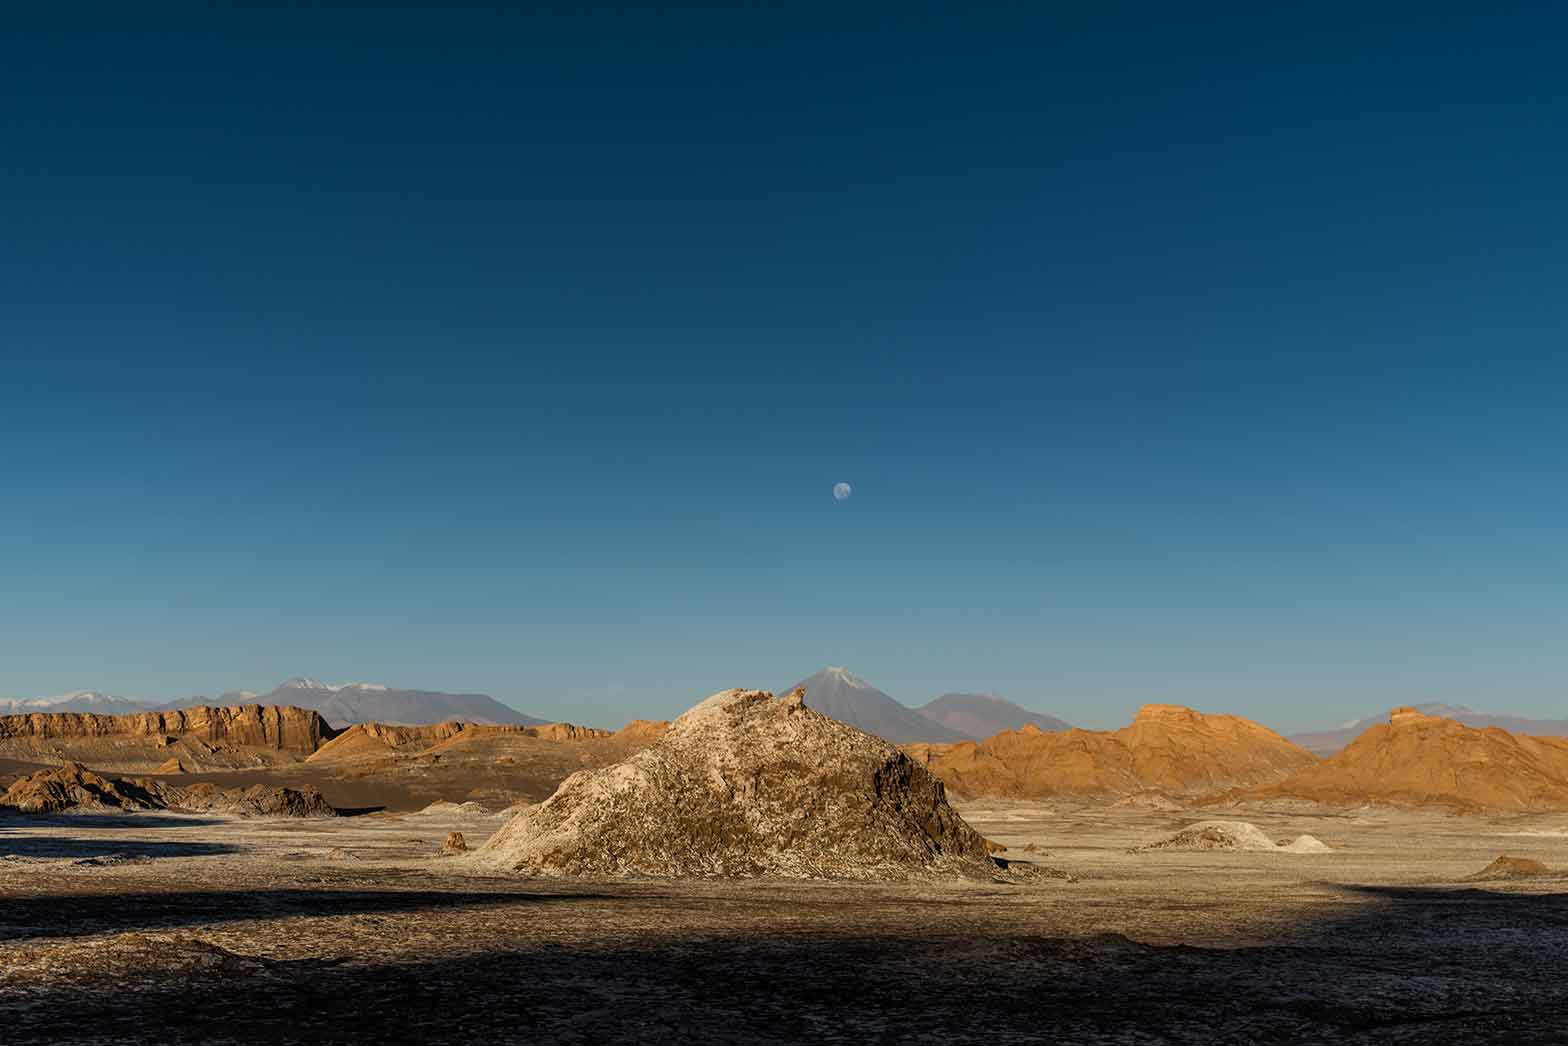 The highest point at Moon Valley in the Atacama desert.